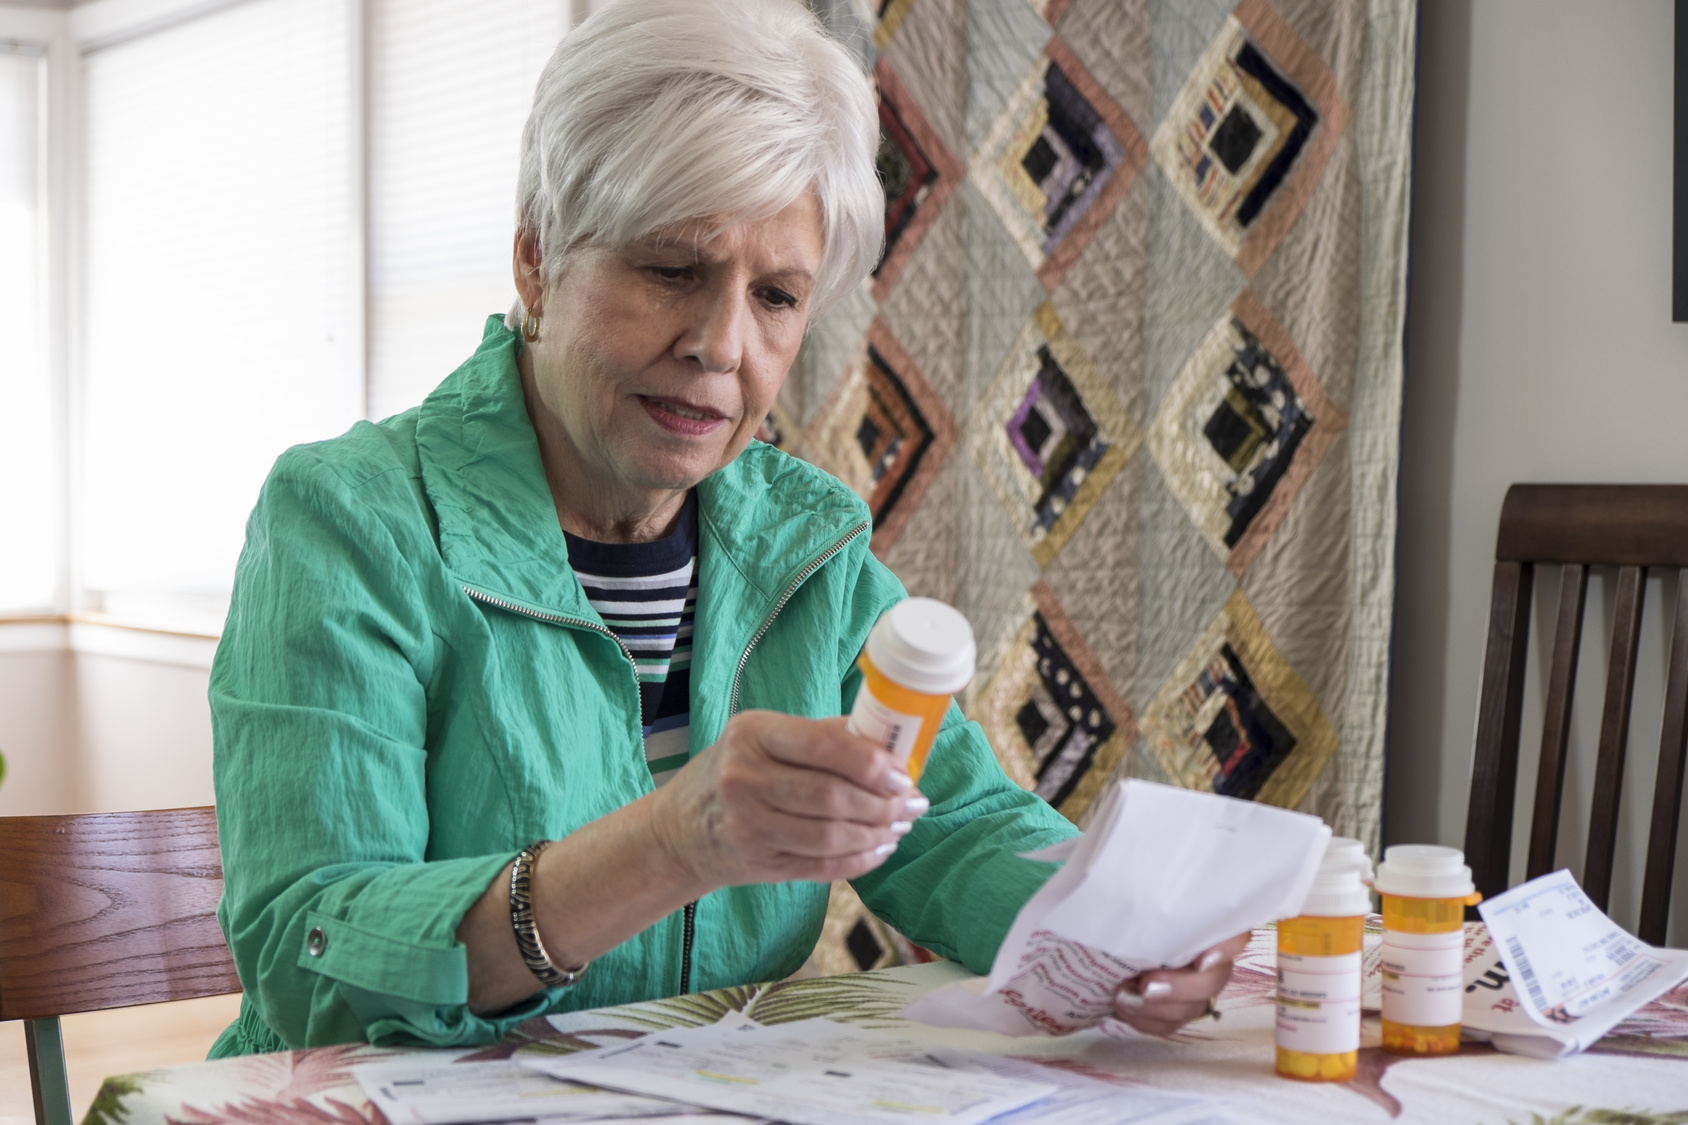 65 and Still Working: Health Insurance Coverage Facts You Need to Know